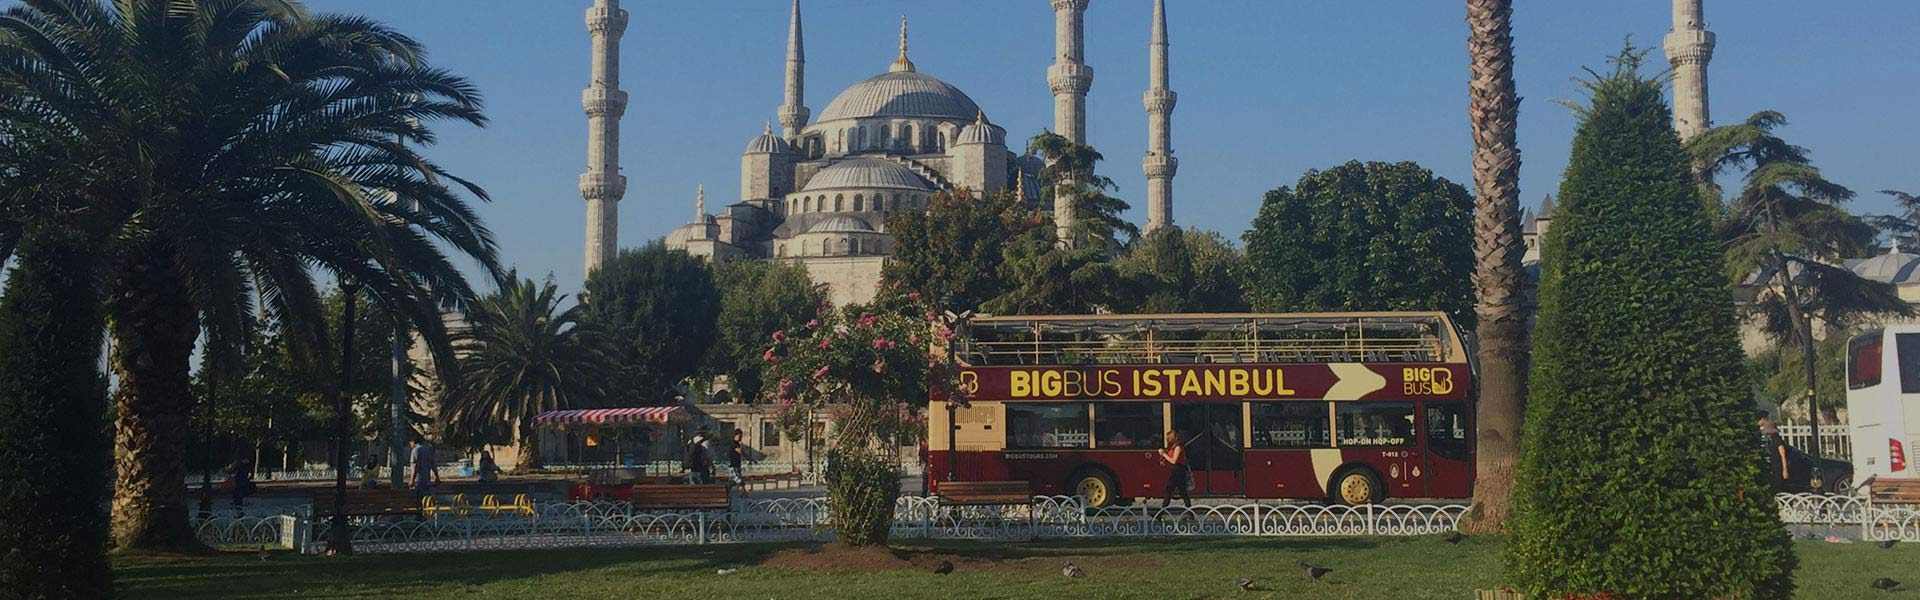 Big Bus open-top sightseeing tour in Istanbul